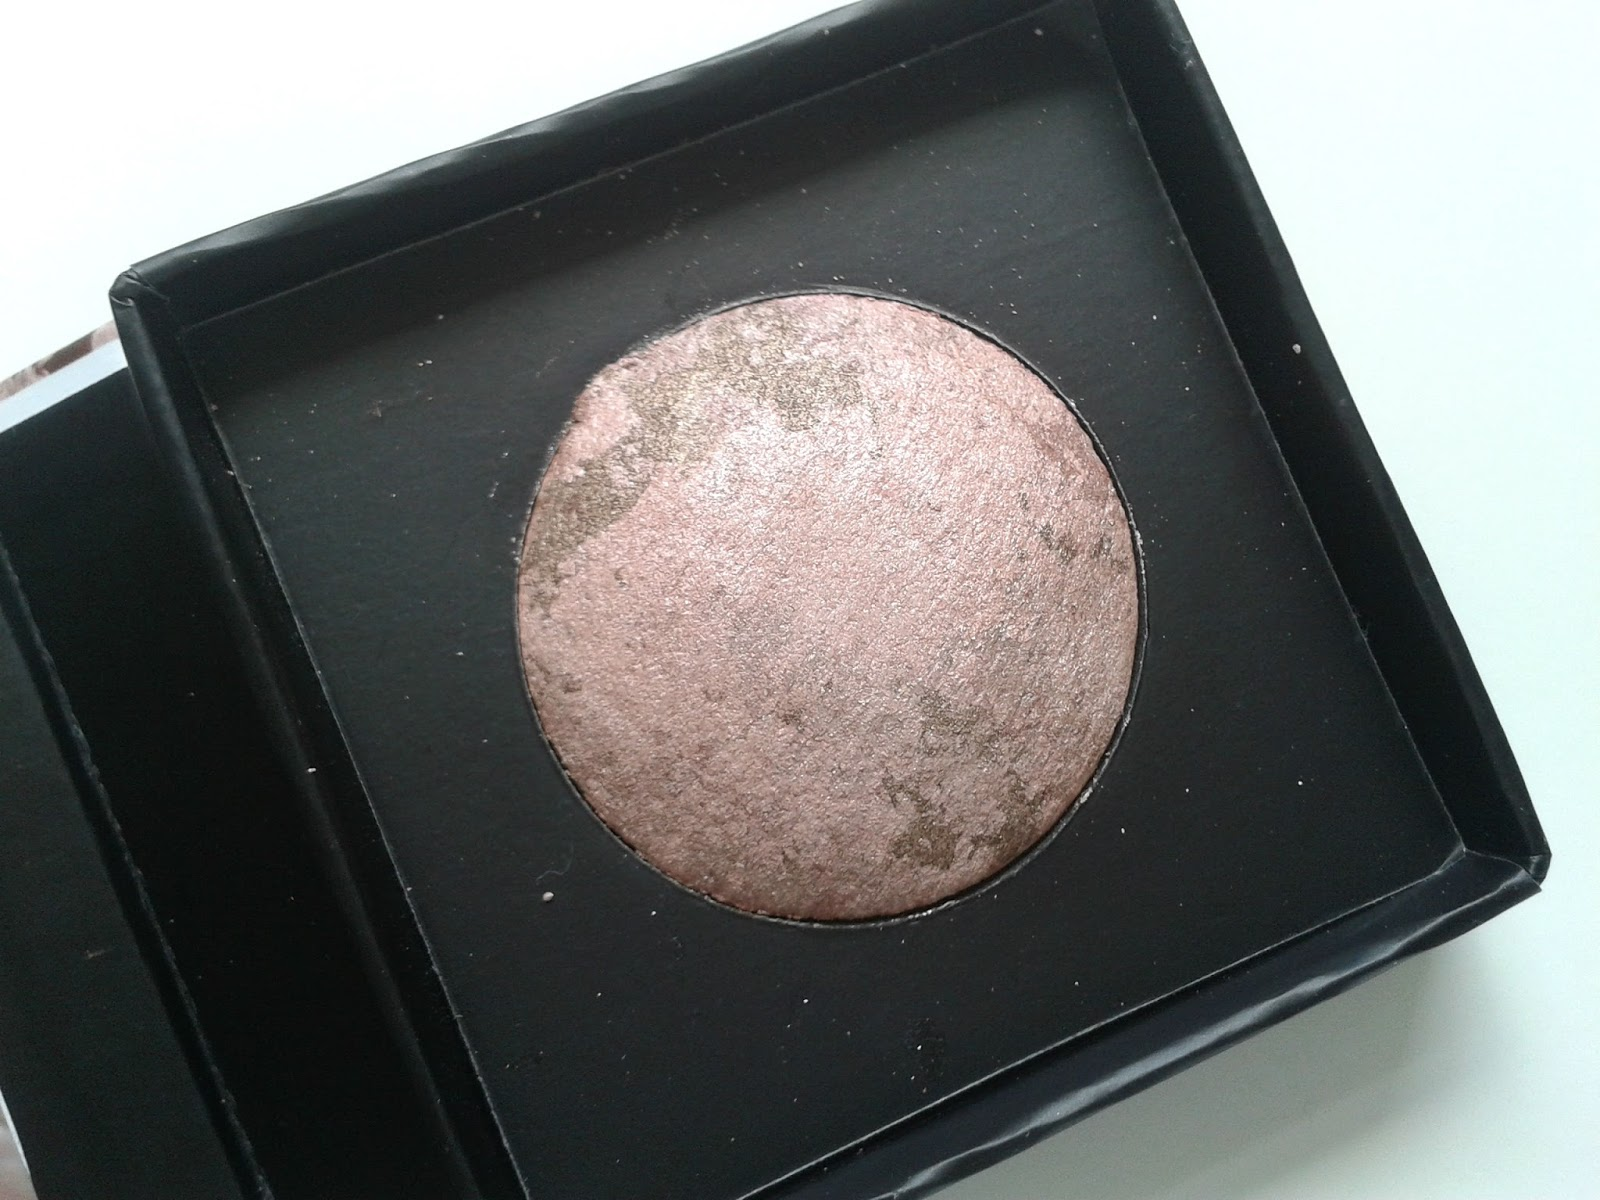 Beauty UK Baked Blusher in Halo Beauty Review